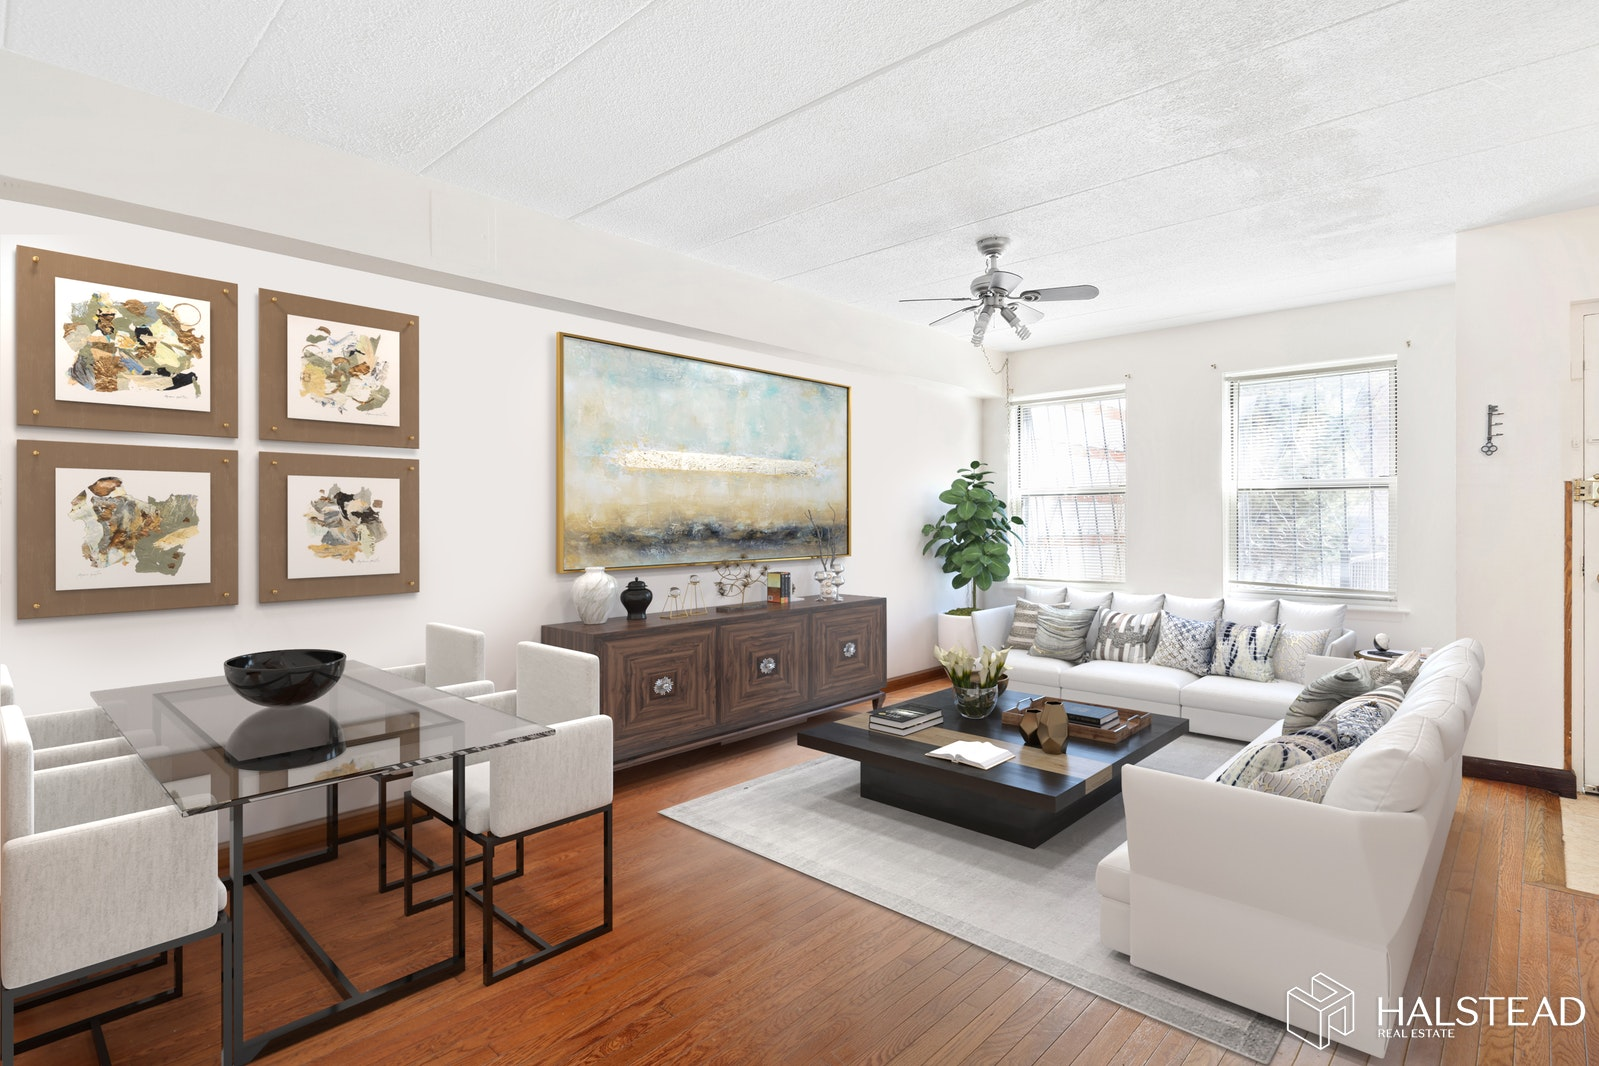 2579 Frederick Douglass B B, Upper Manhattan, NYC, 10030, $765,000, Sold Property, Halstead Real Estate, Photo 1